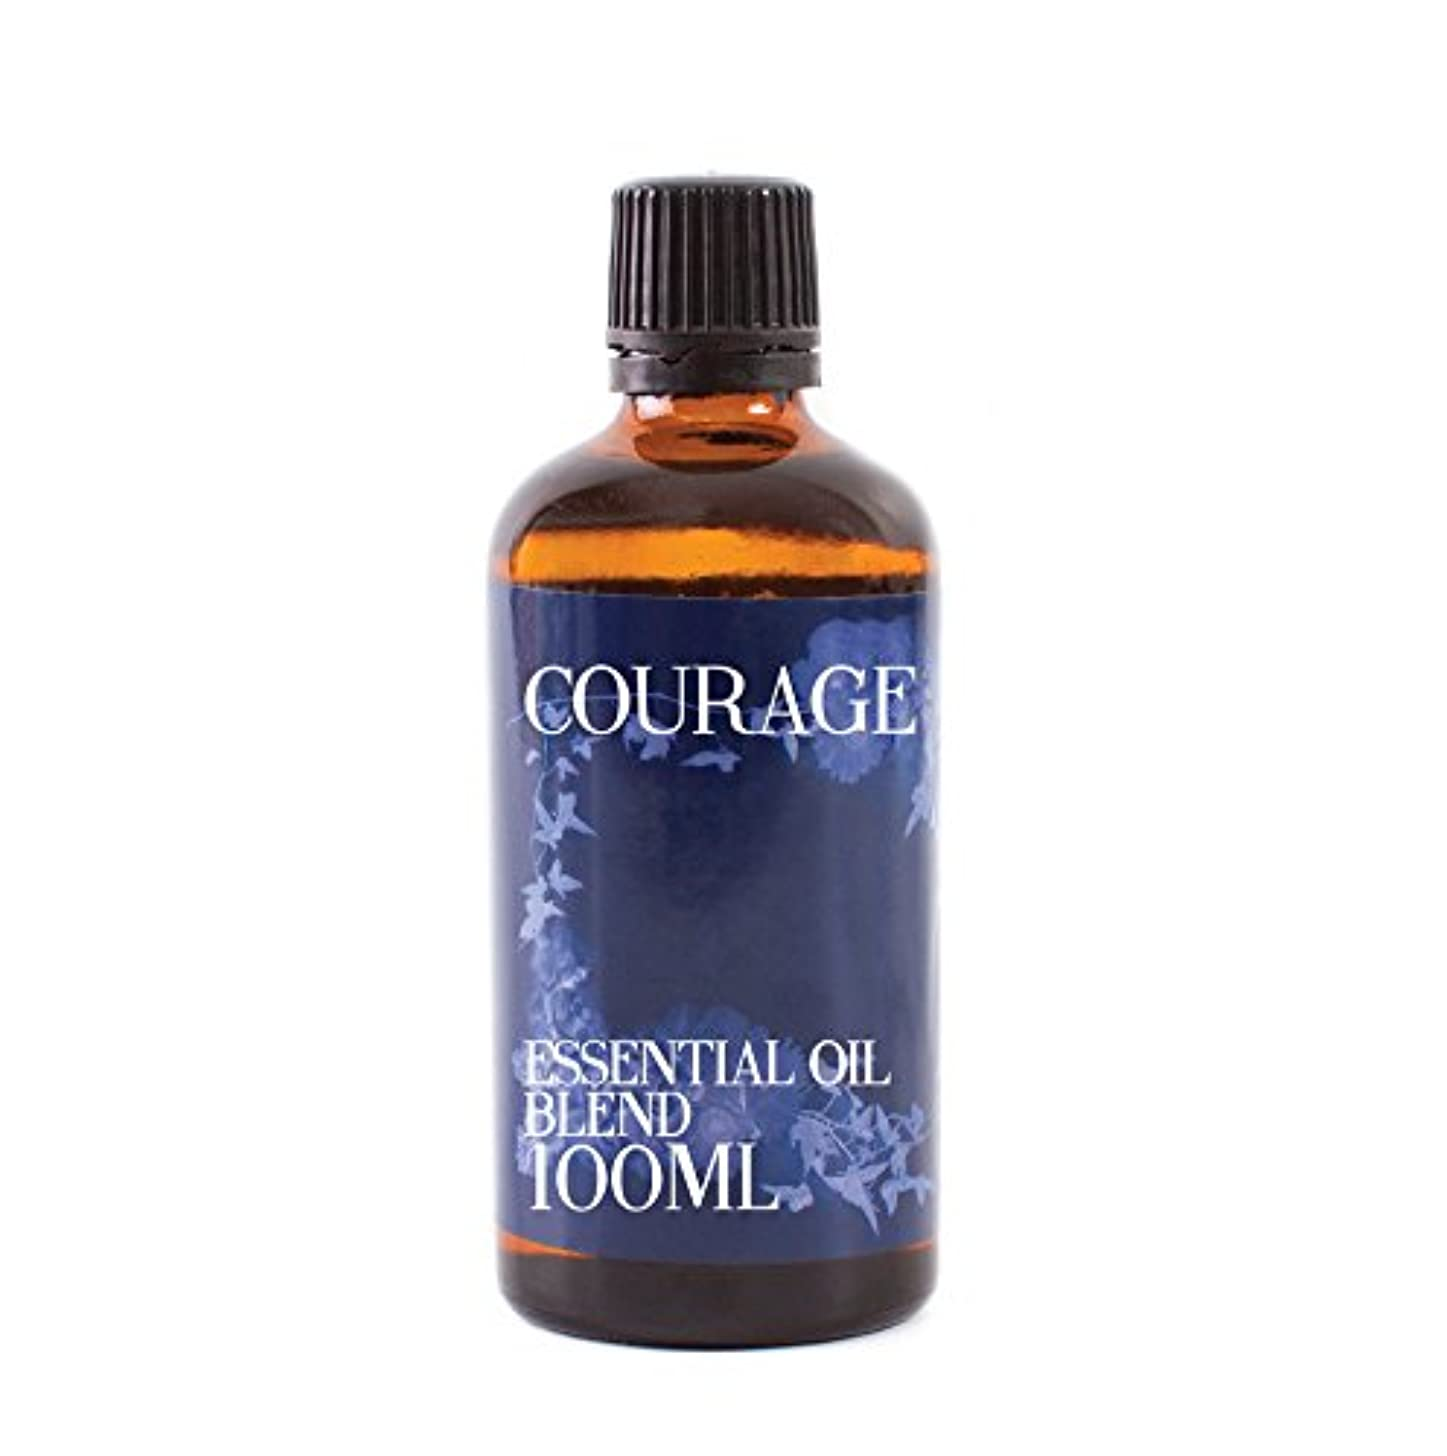 アンソロジーオーガニック移住するMystic Moments | Courage Essential Oil Blend - 100ml - 100% Pure